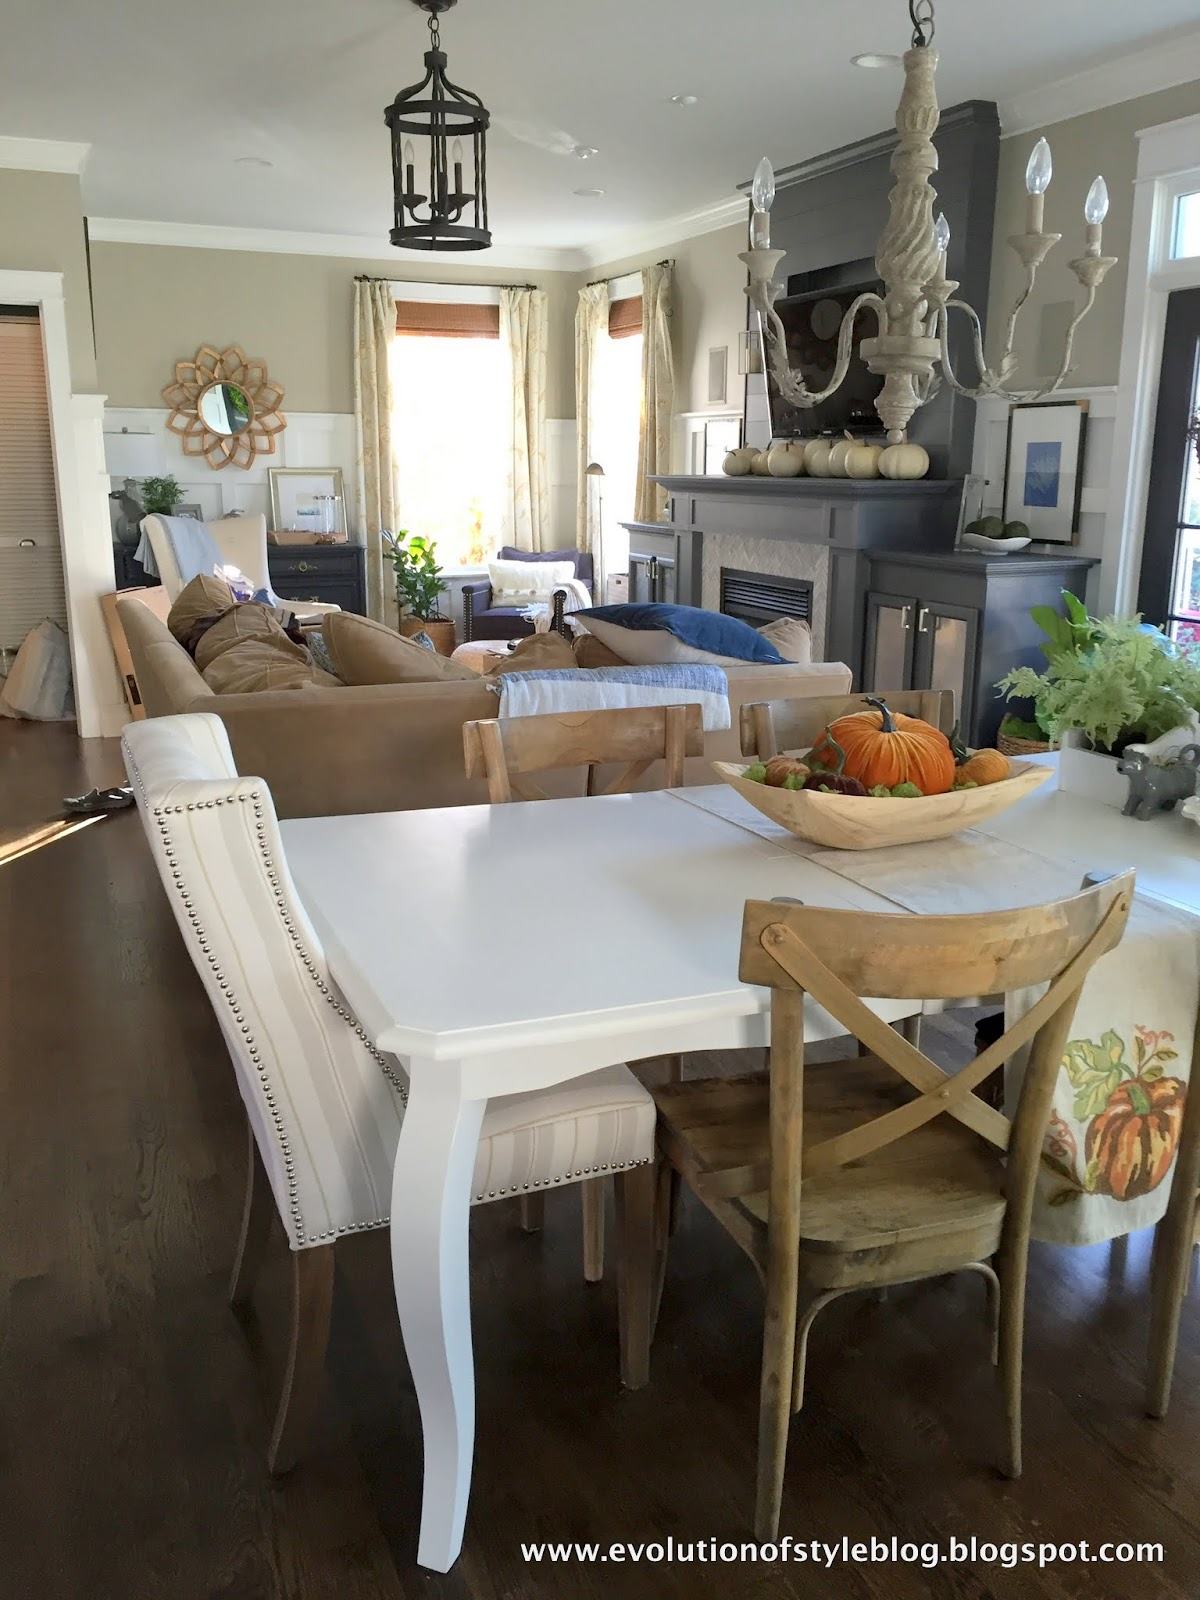 A Cabinet Painting House Call with Thrifty Decor Chick - Evolution ...